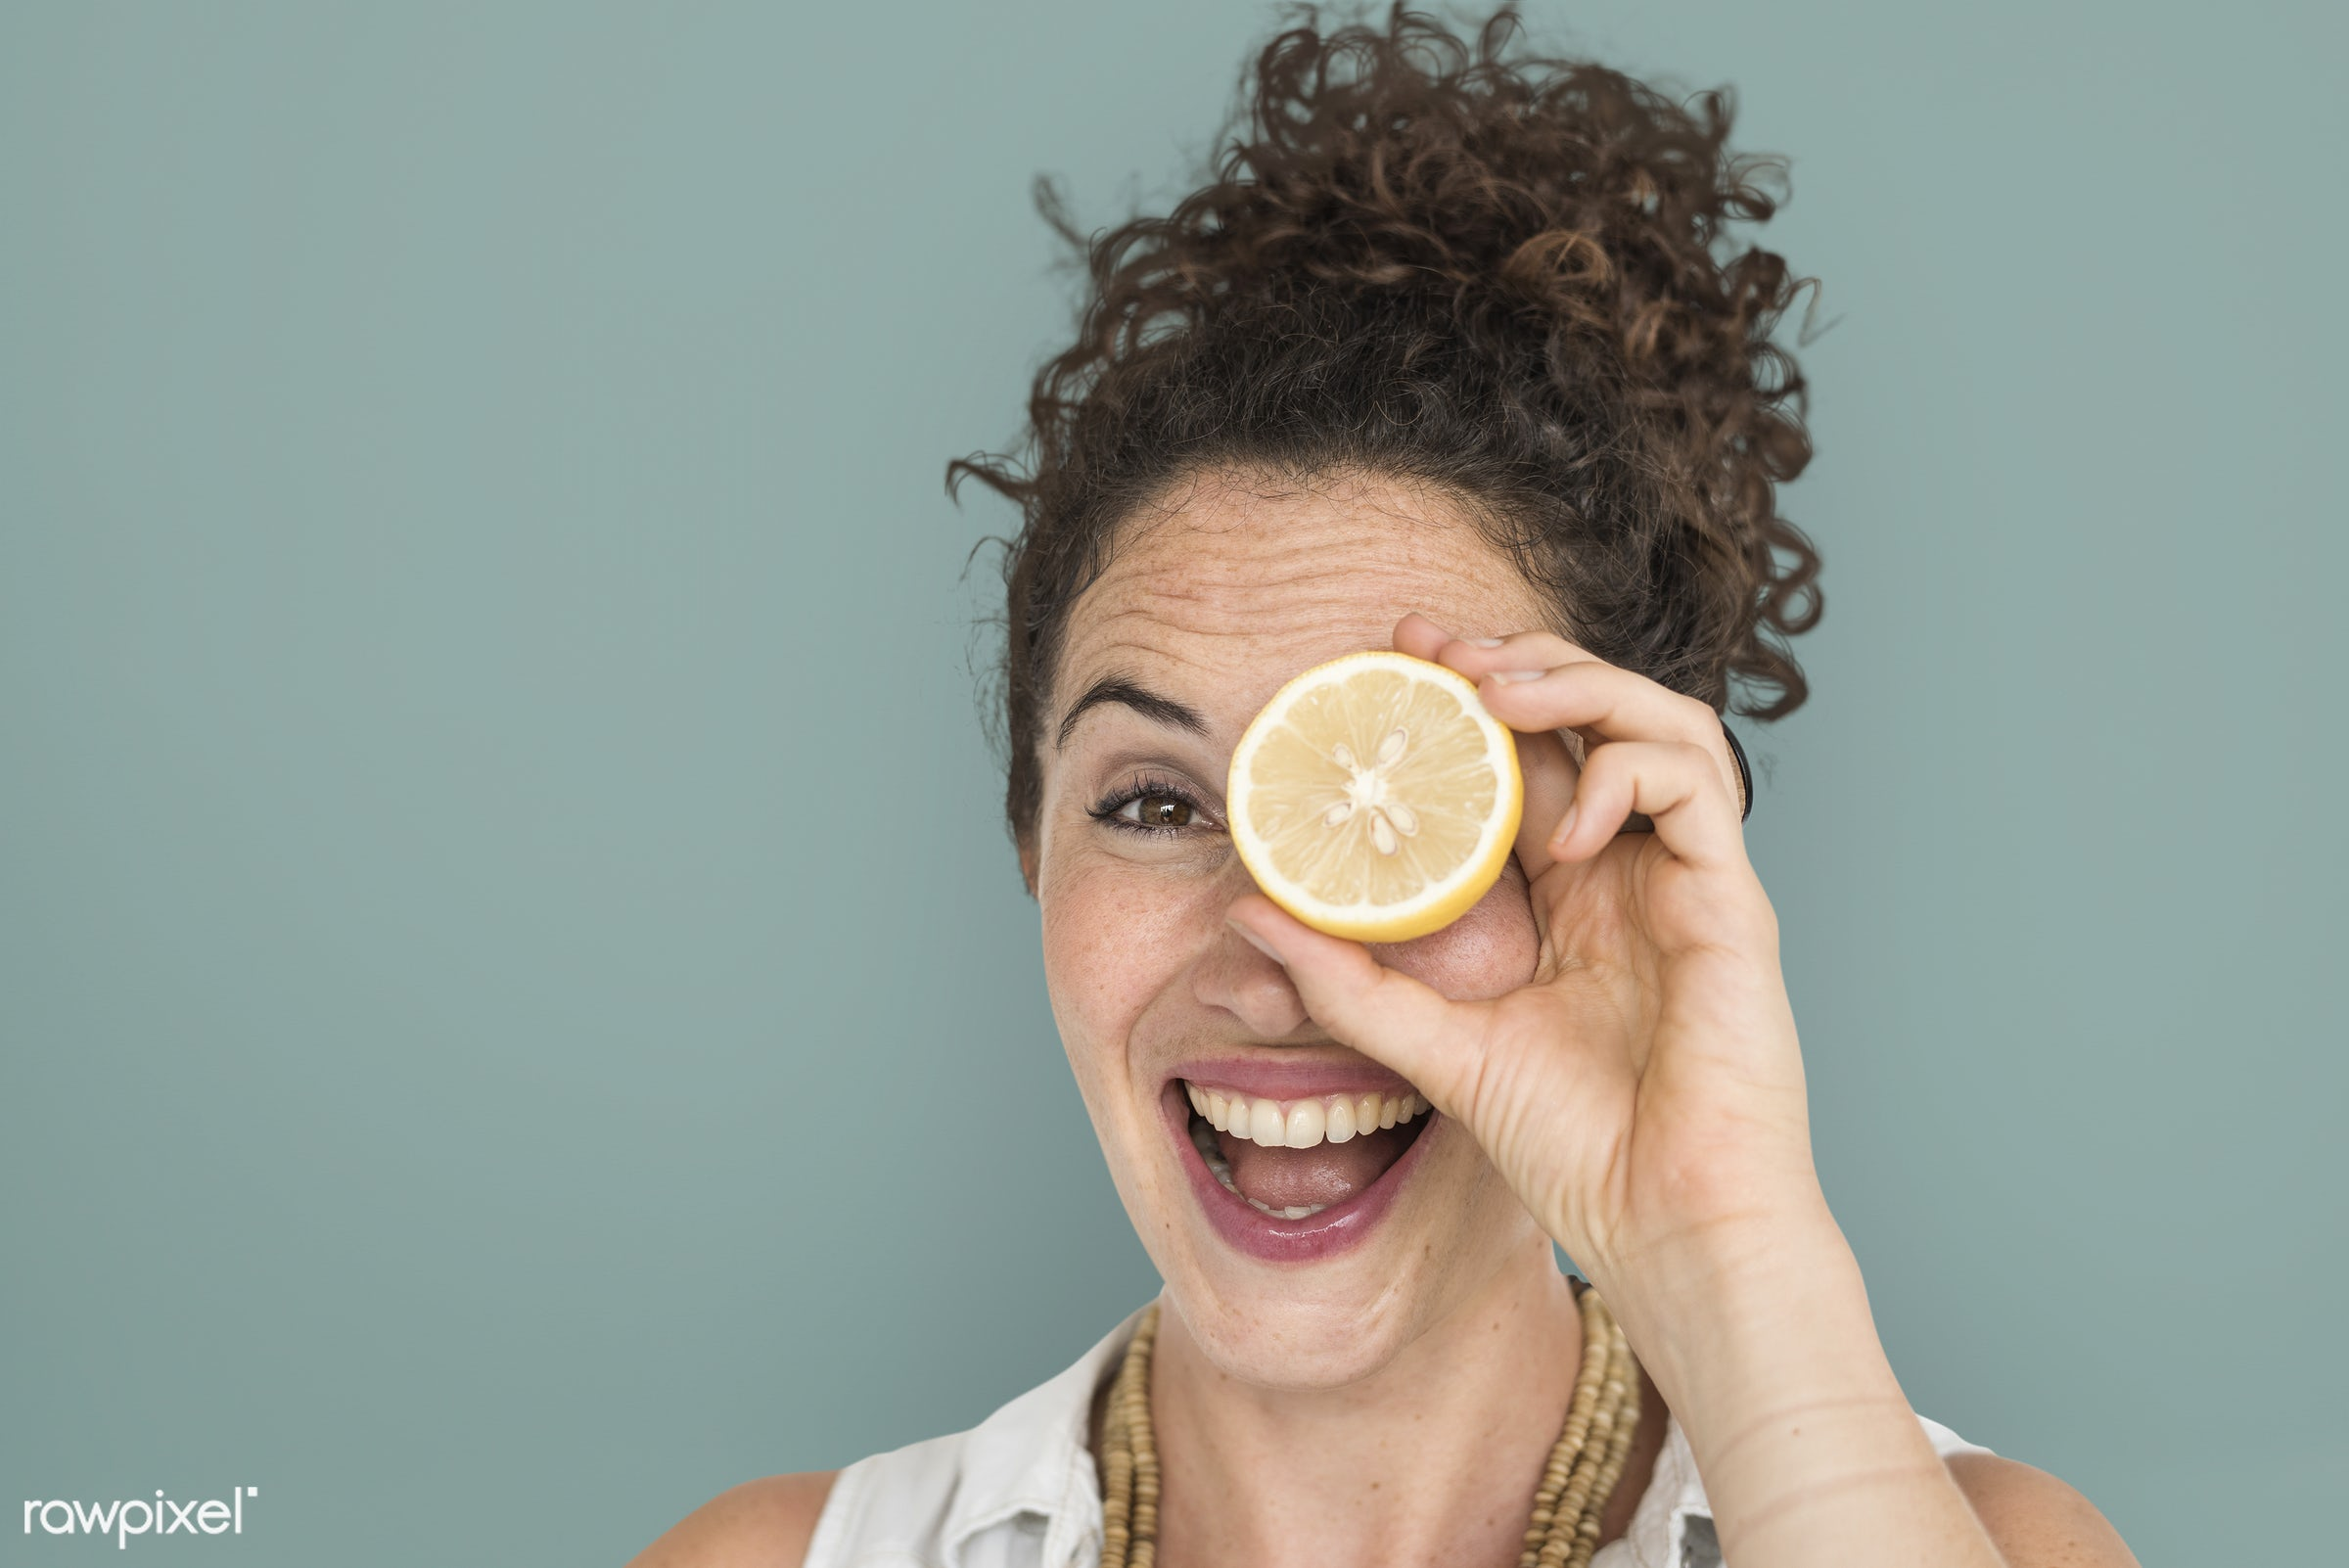 studio, expression, person, people, eyes, cover, woman, cheerful, smiling, isolated, fruit, human hand, happiness, portrait...